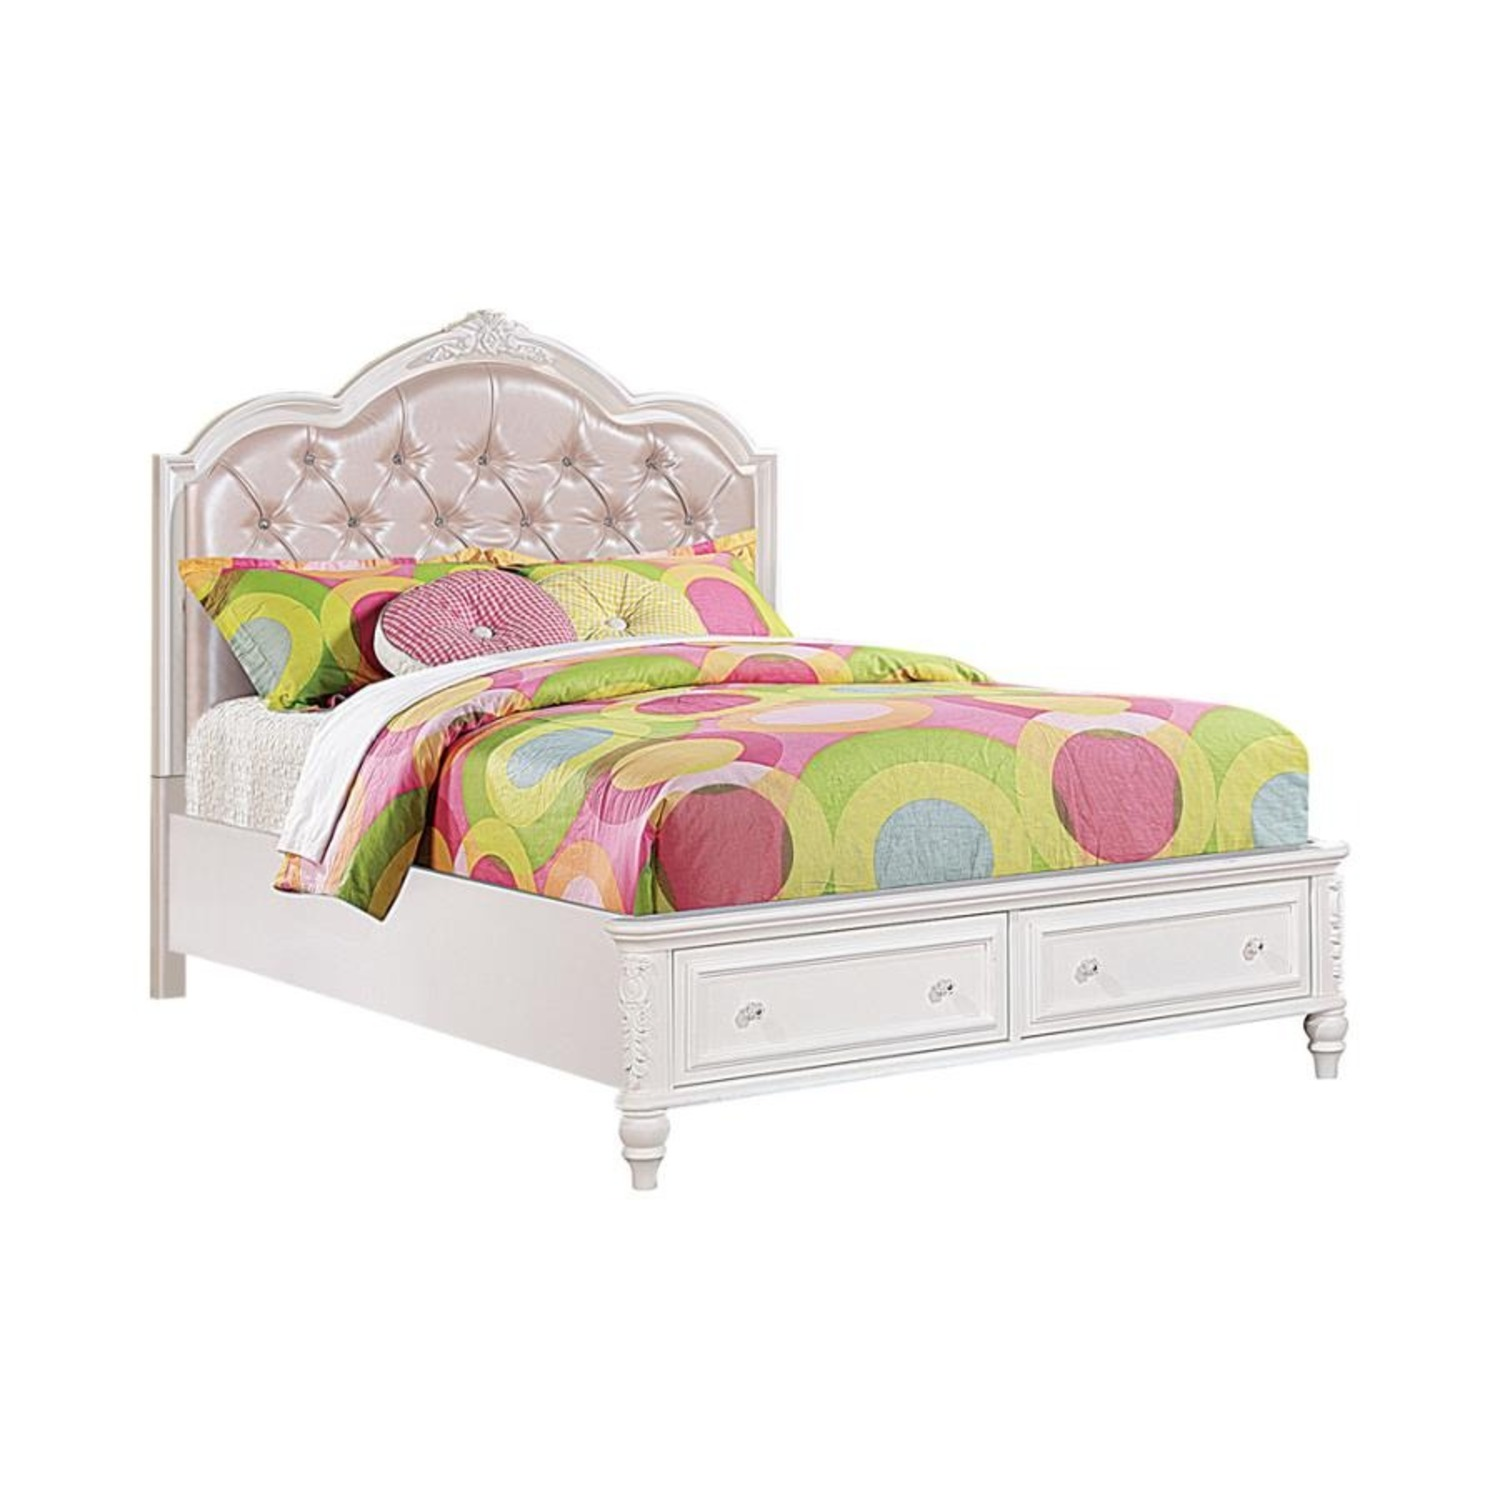 Twin Bed In White Finish W/ Pink Leatherette - image-0